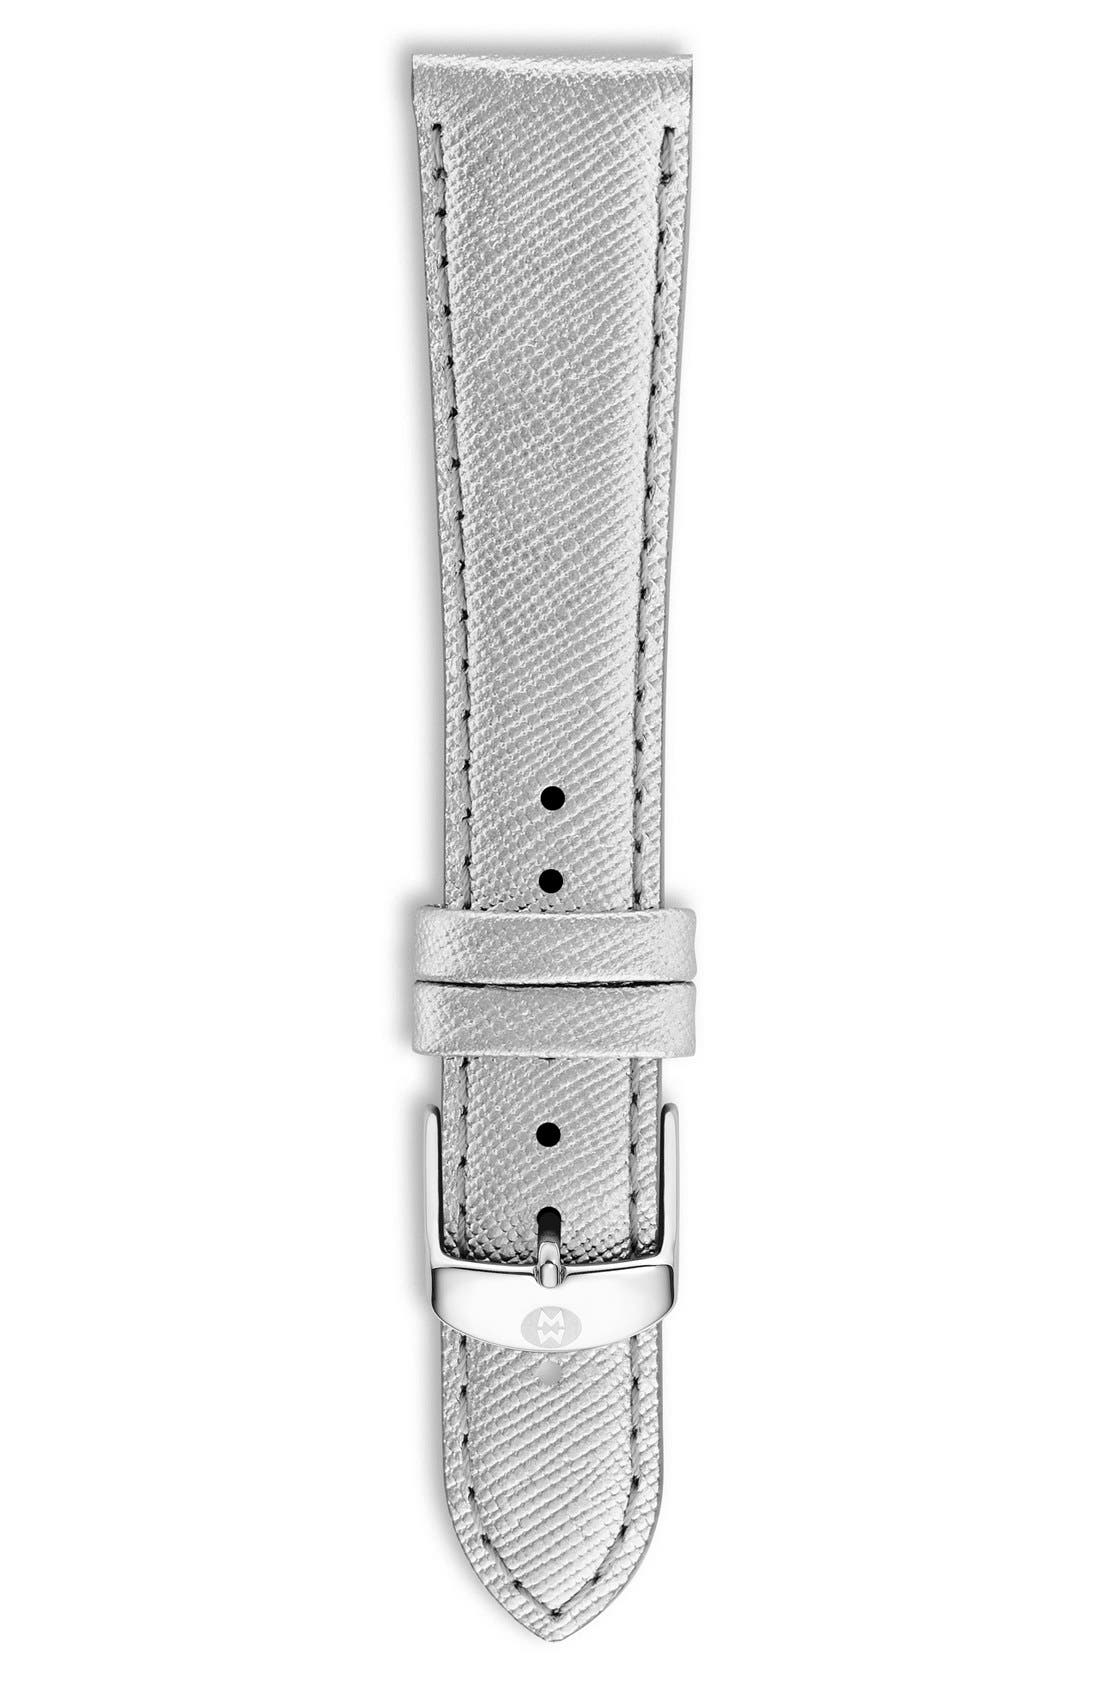 16mm Metallic Leather Watch Strap,                             Main thumbnail 1, color,                             Metallic C